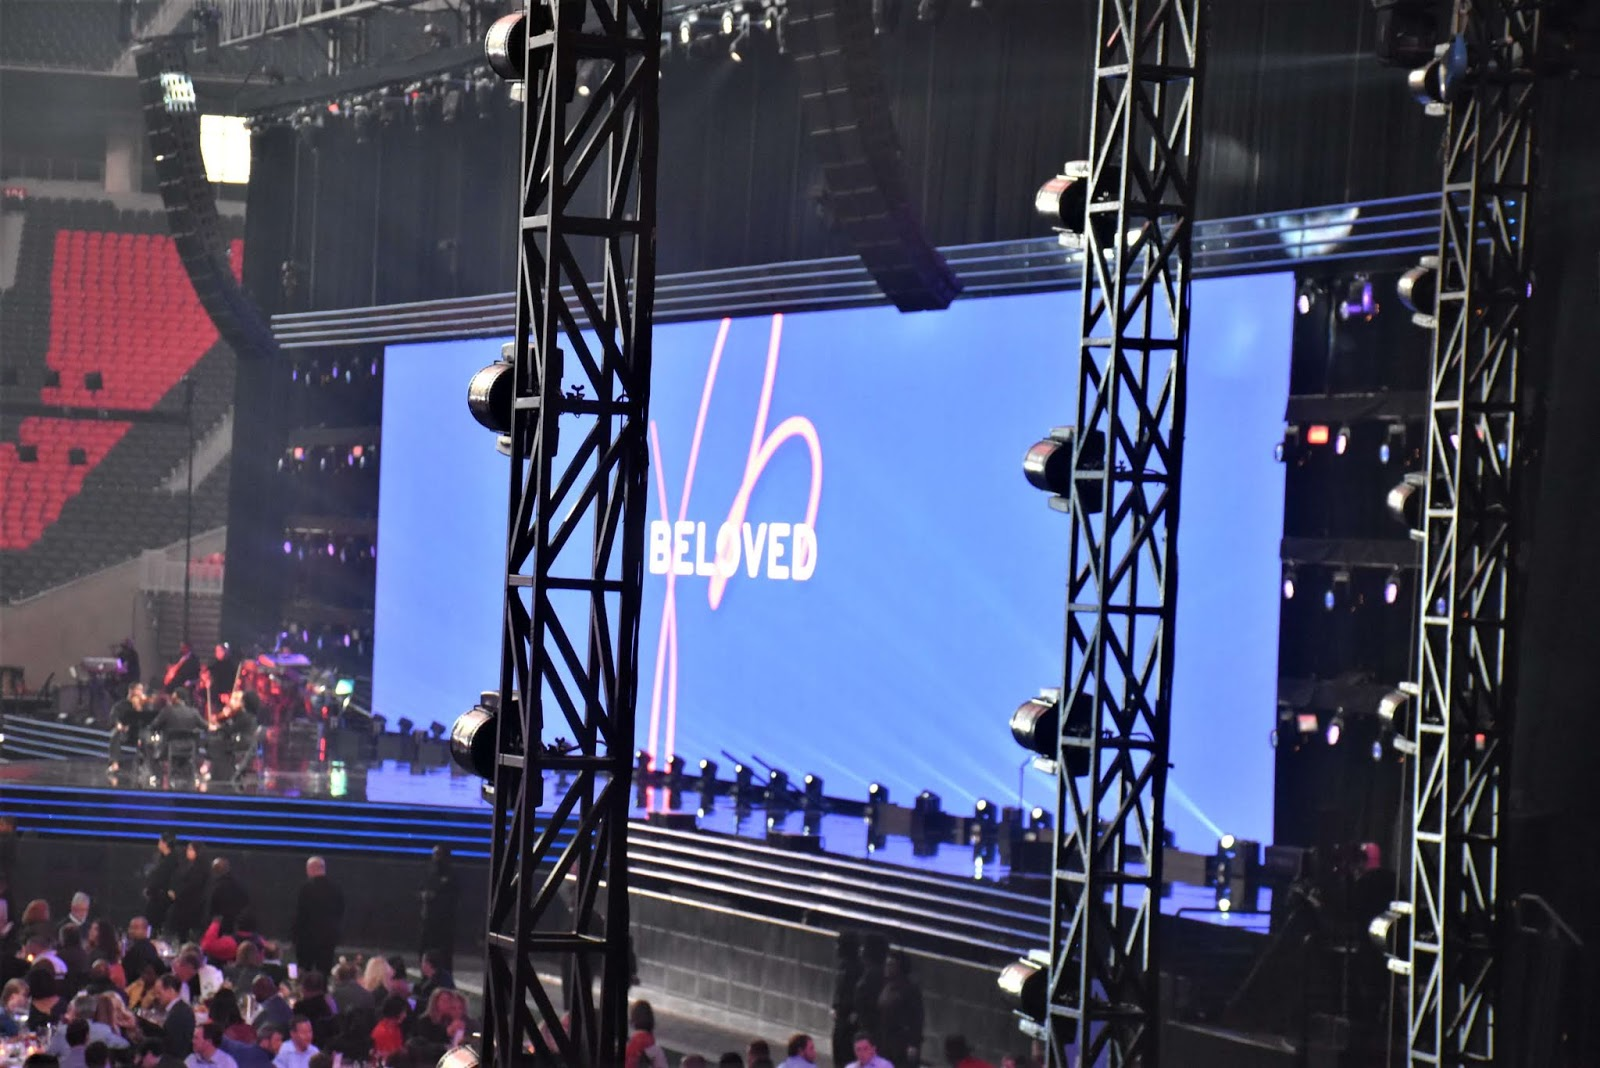 Beloved Benefit at Mercedes Benz Stadium